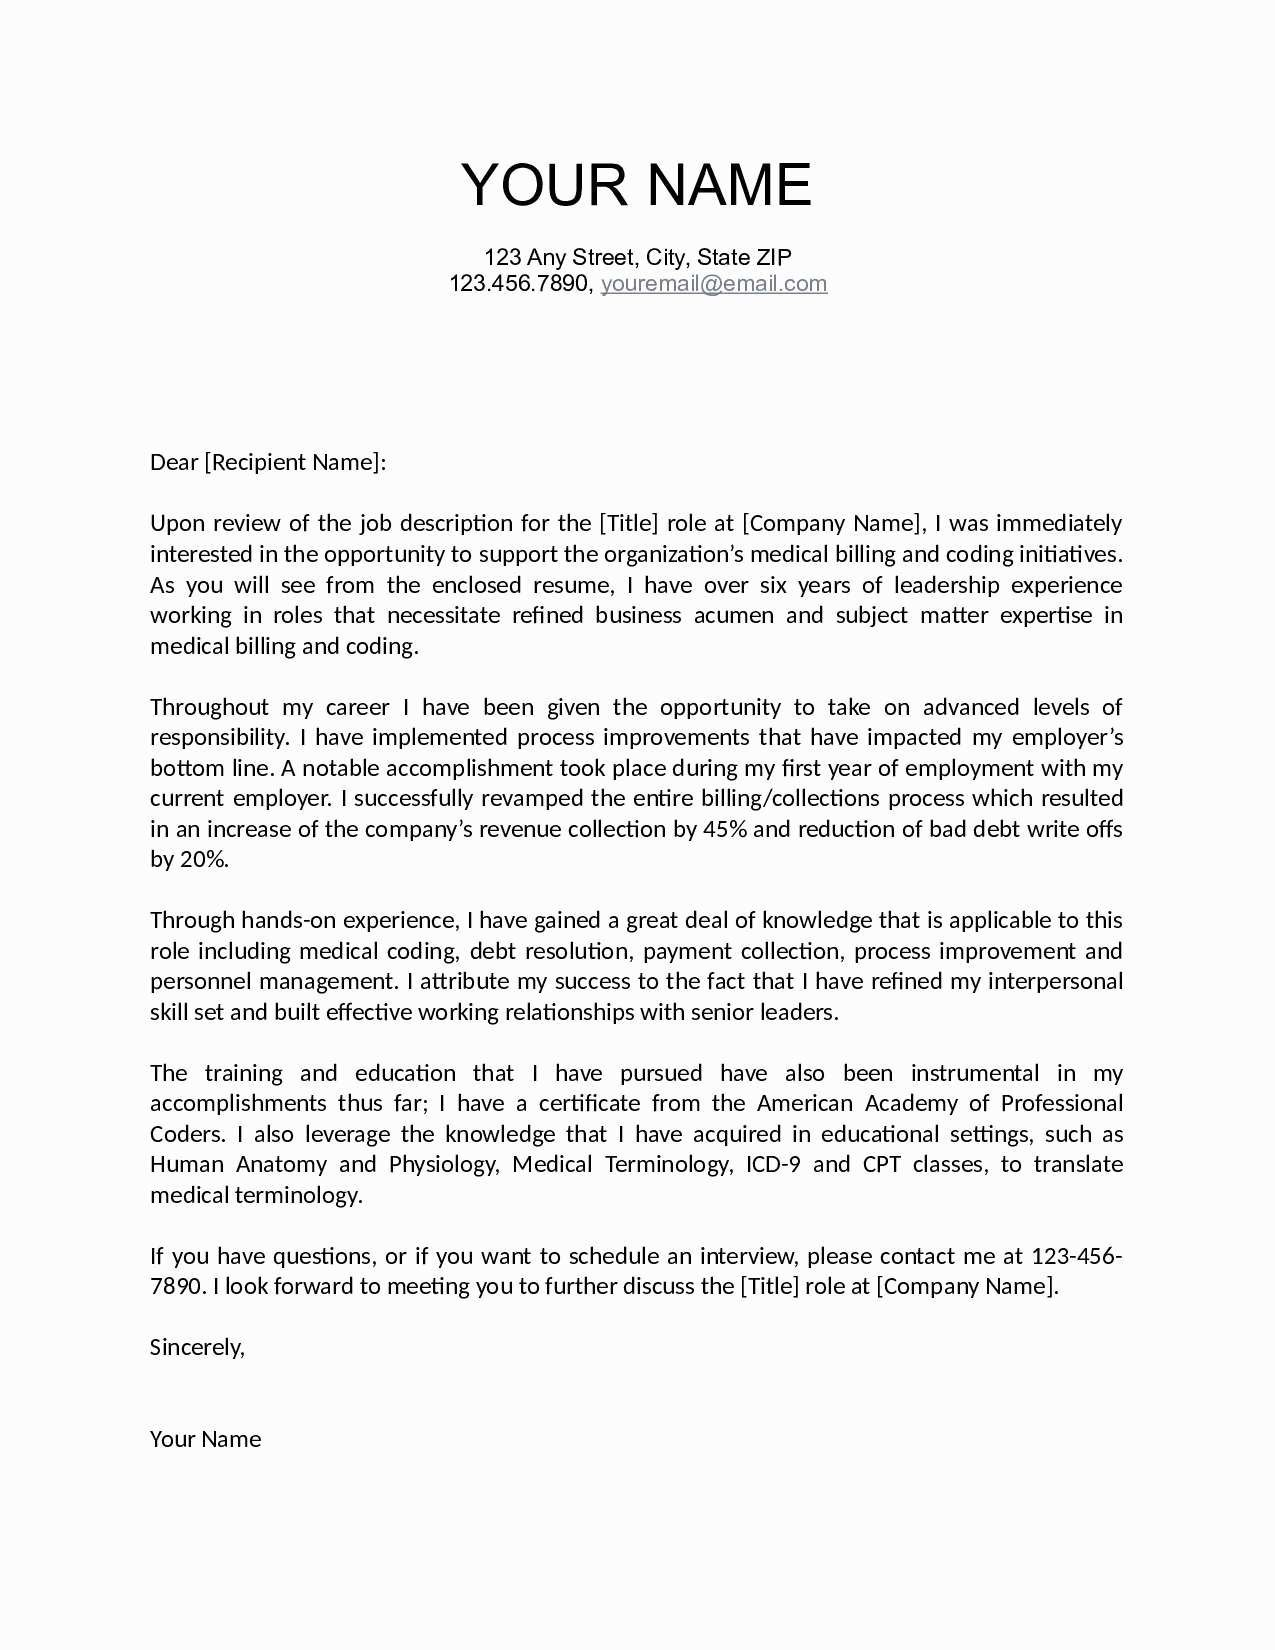 Cover Letter Template for Google Docs - My Resume is attached Luxury Elegant Past Due Letter Template Lovely